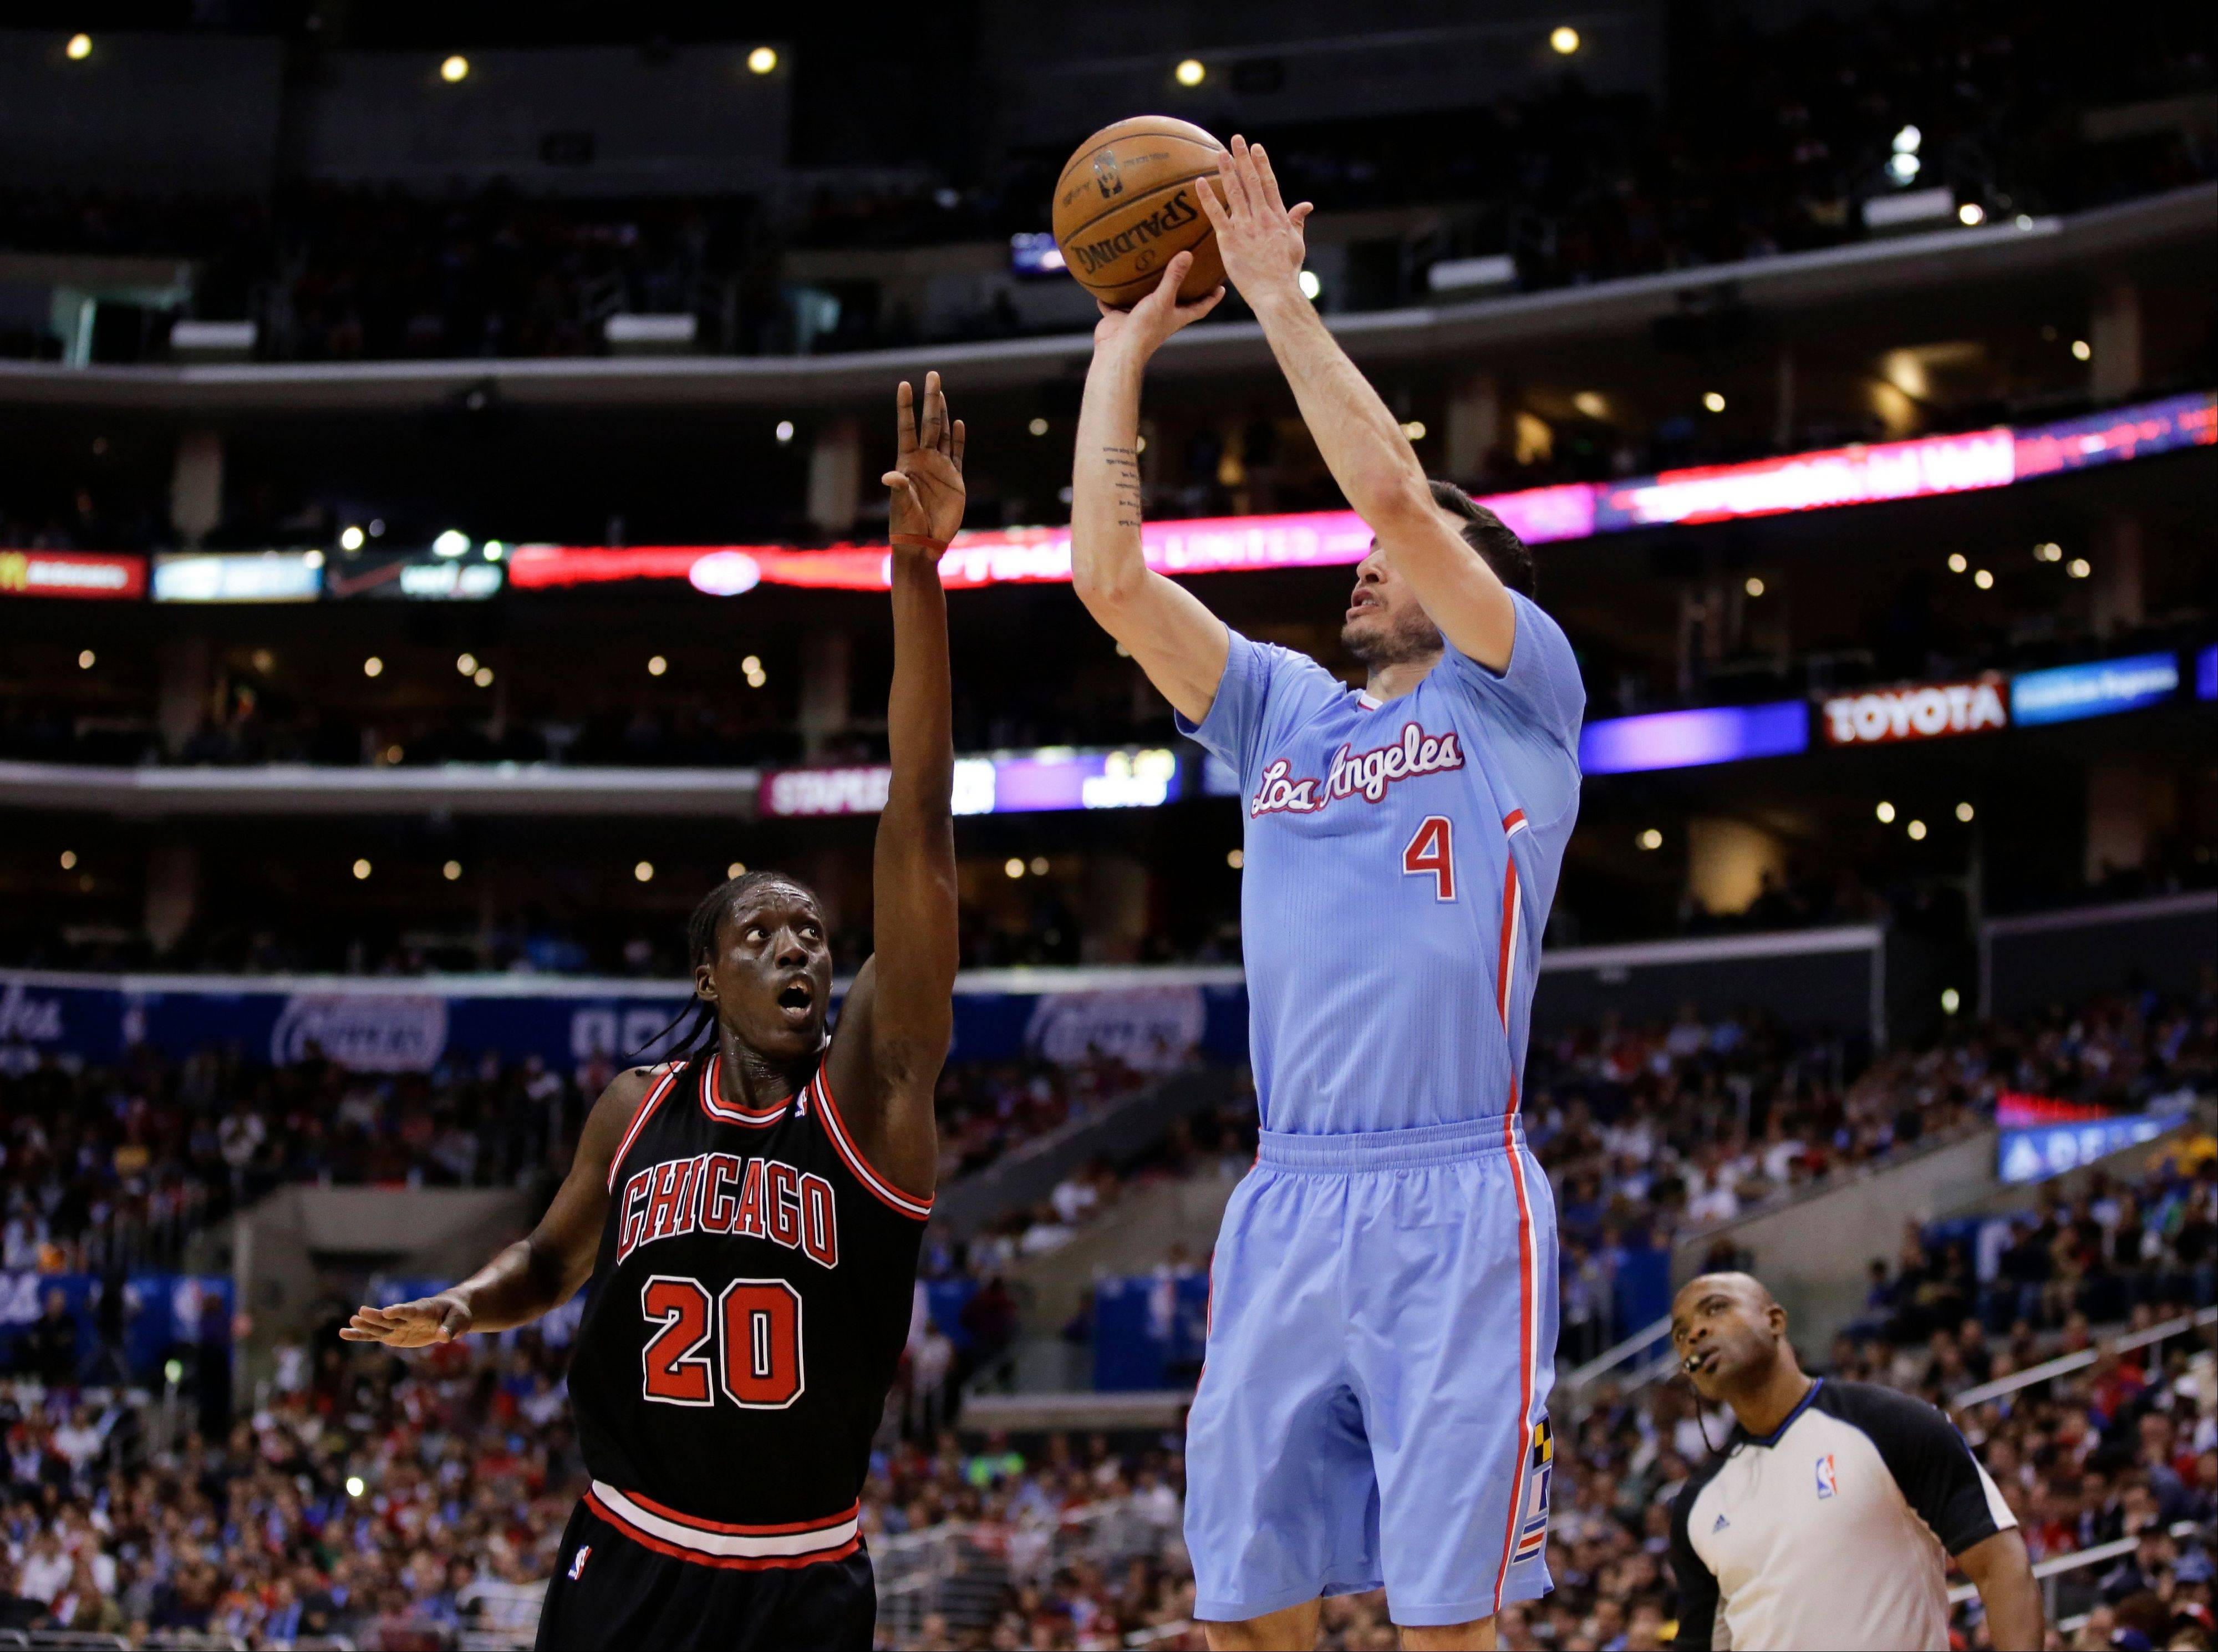 Los Angeles Clippers guard J.J. Redick (4) shoots over Chicago Bulls forward Tony Snell during the first half of an NBA basketball game in Los Angeles, Sunday, Nov. 24, 2013.